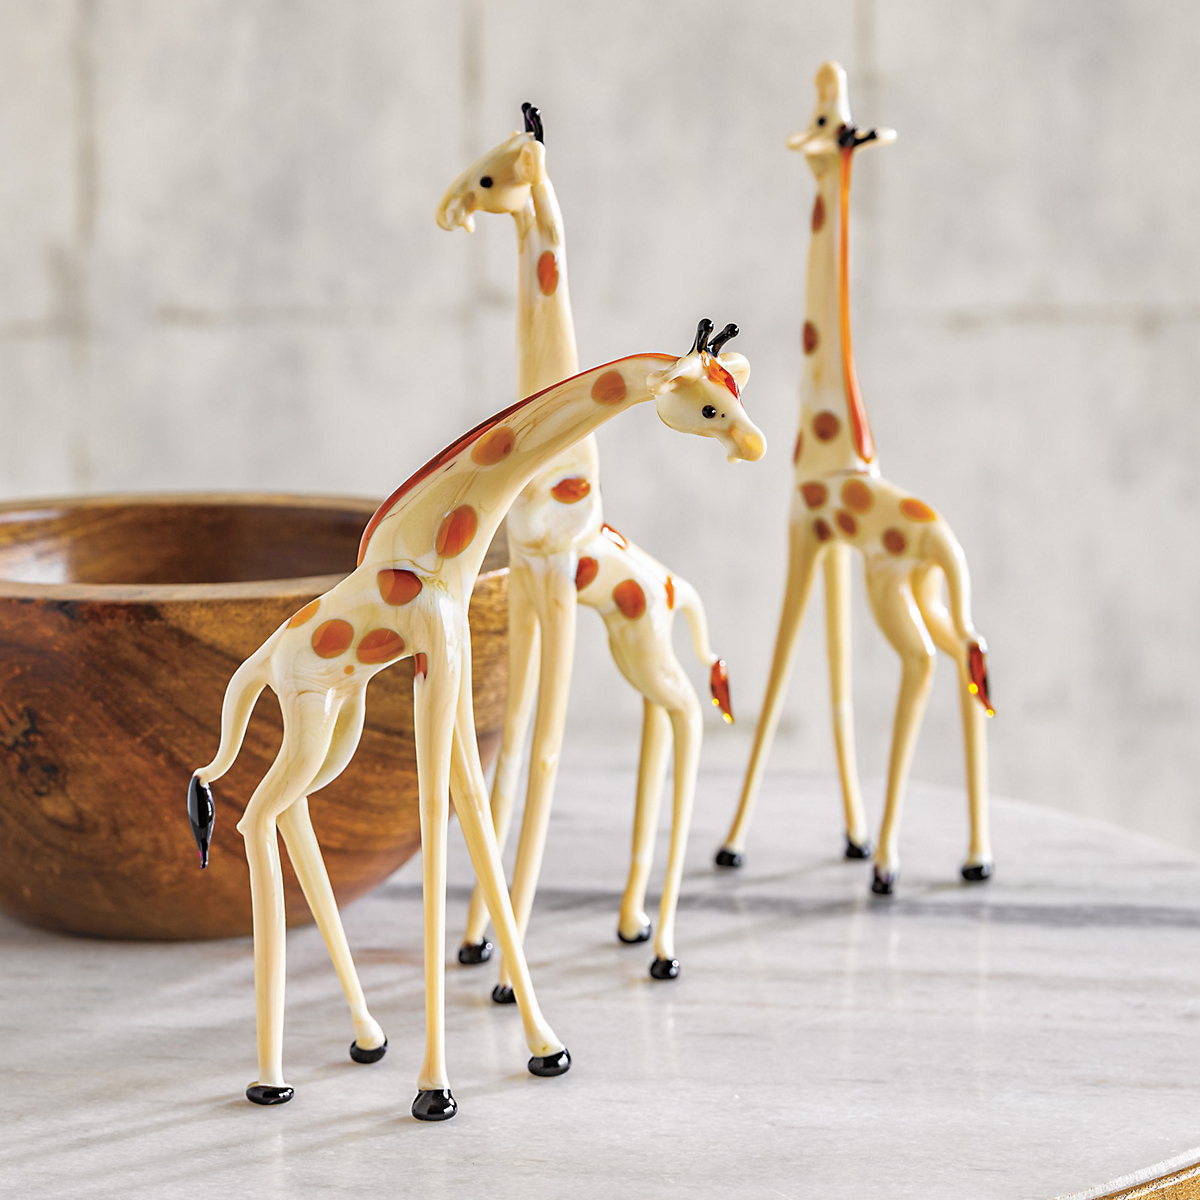 giraffe furniture. Murano Glass Giraffe Figures Furniture